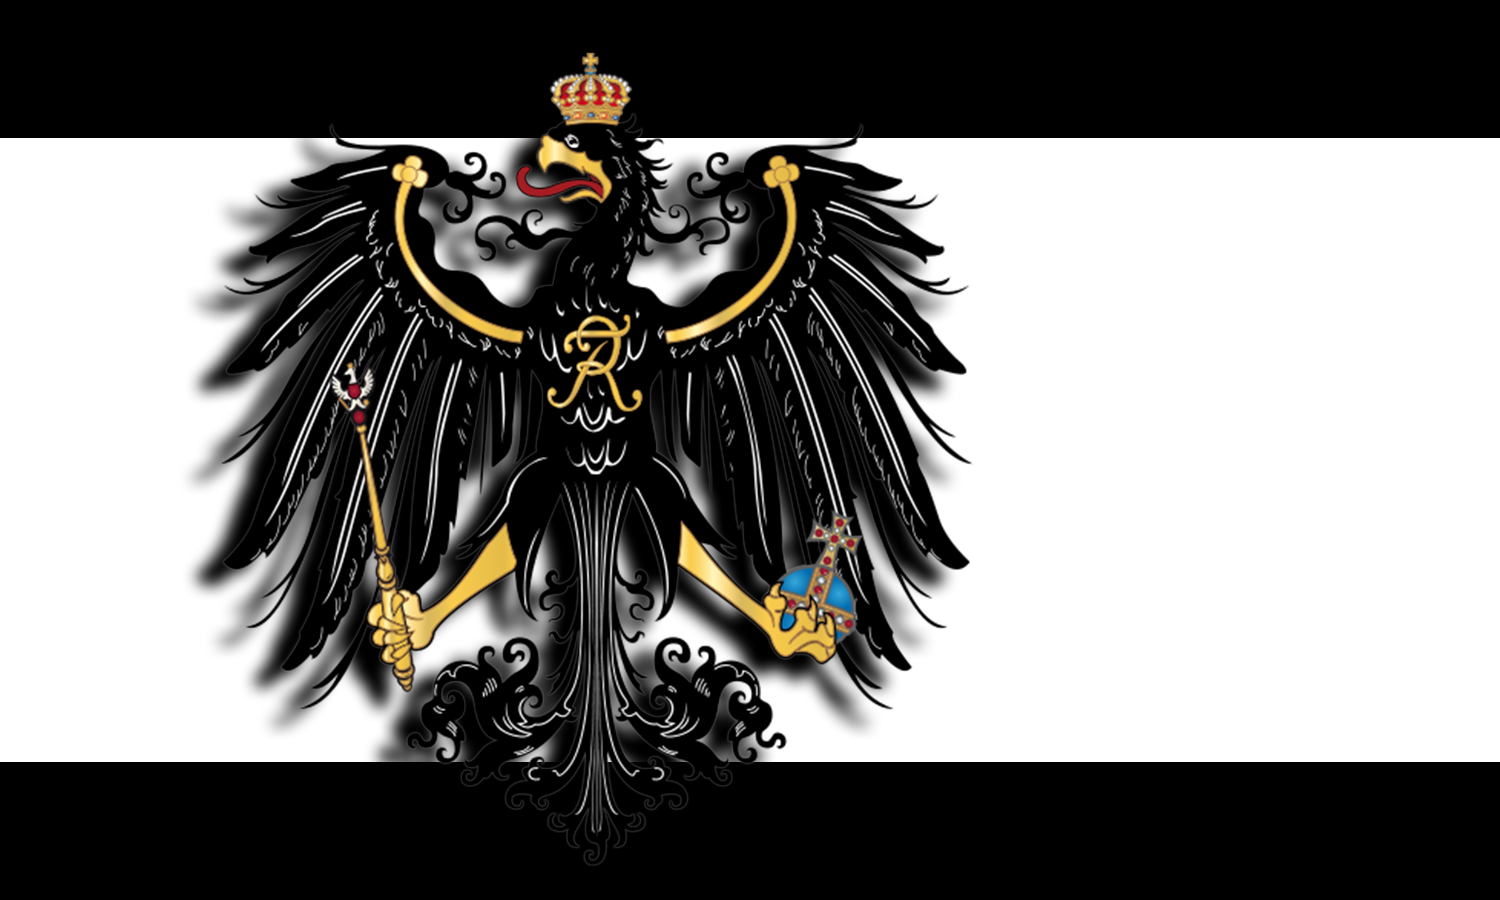 Prussian flag with 3D eagle by Arminius1871 on DeviantArt